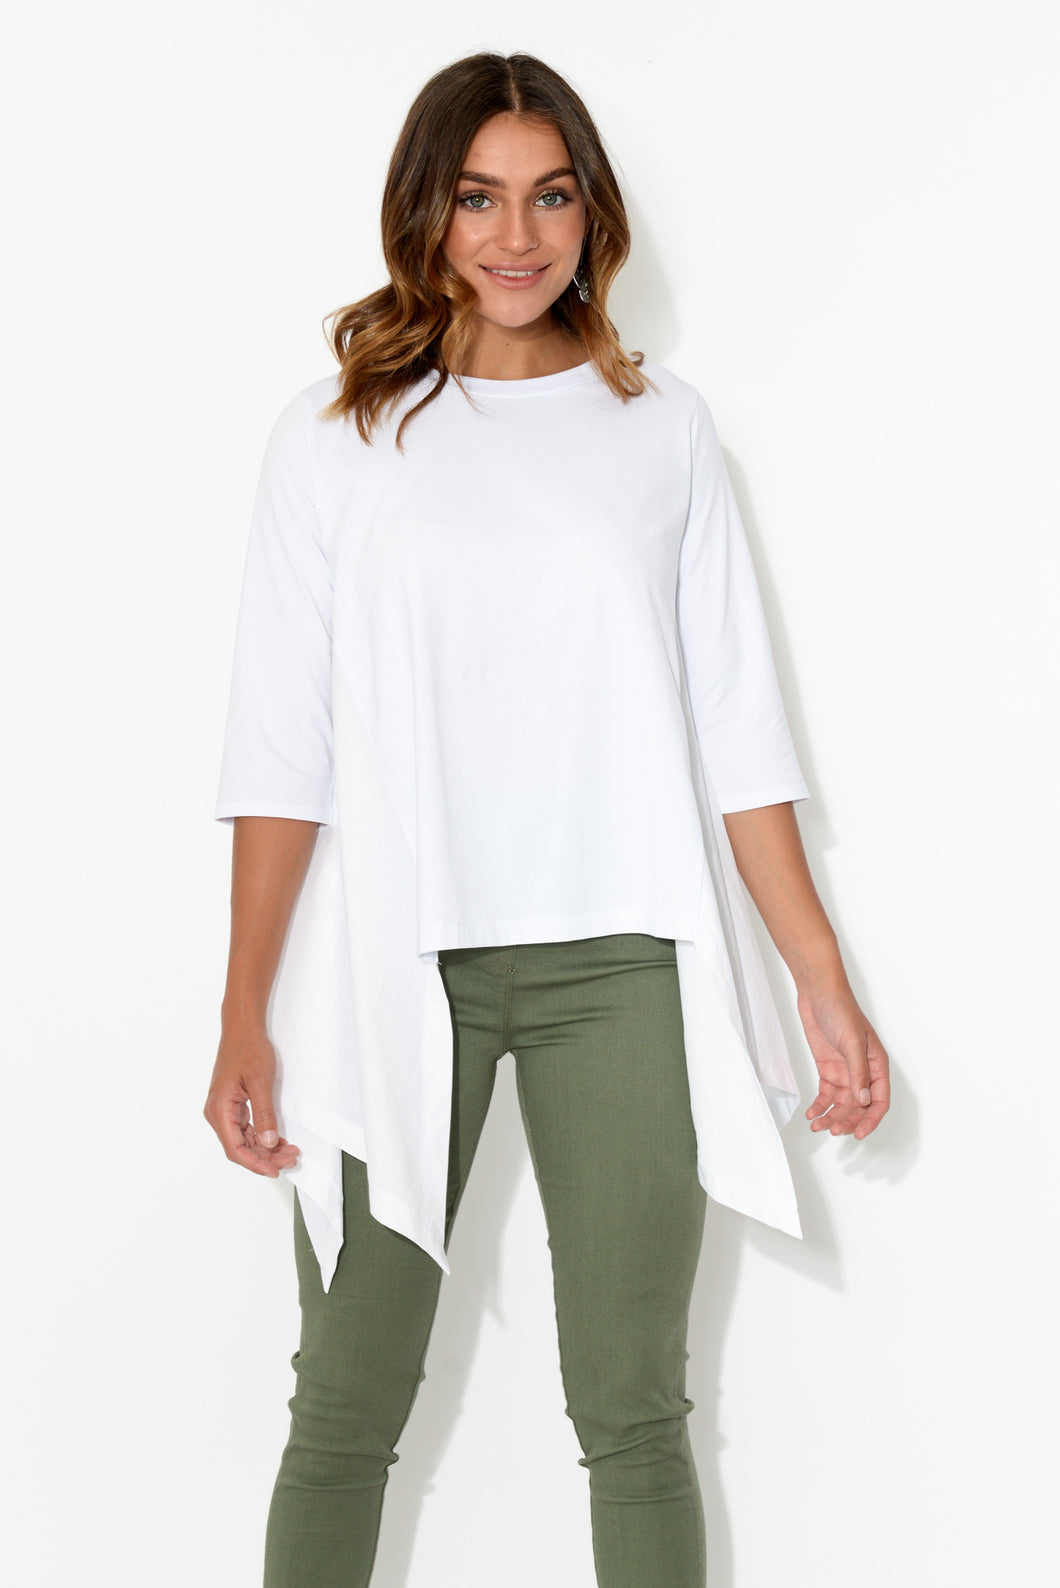 Arcadia White Asymmetrical Top